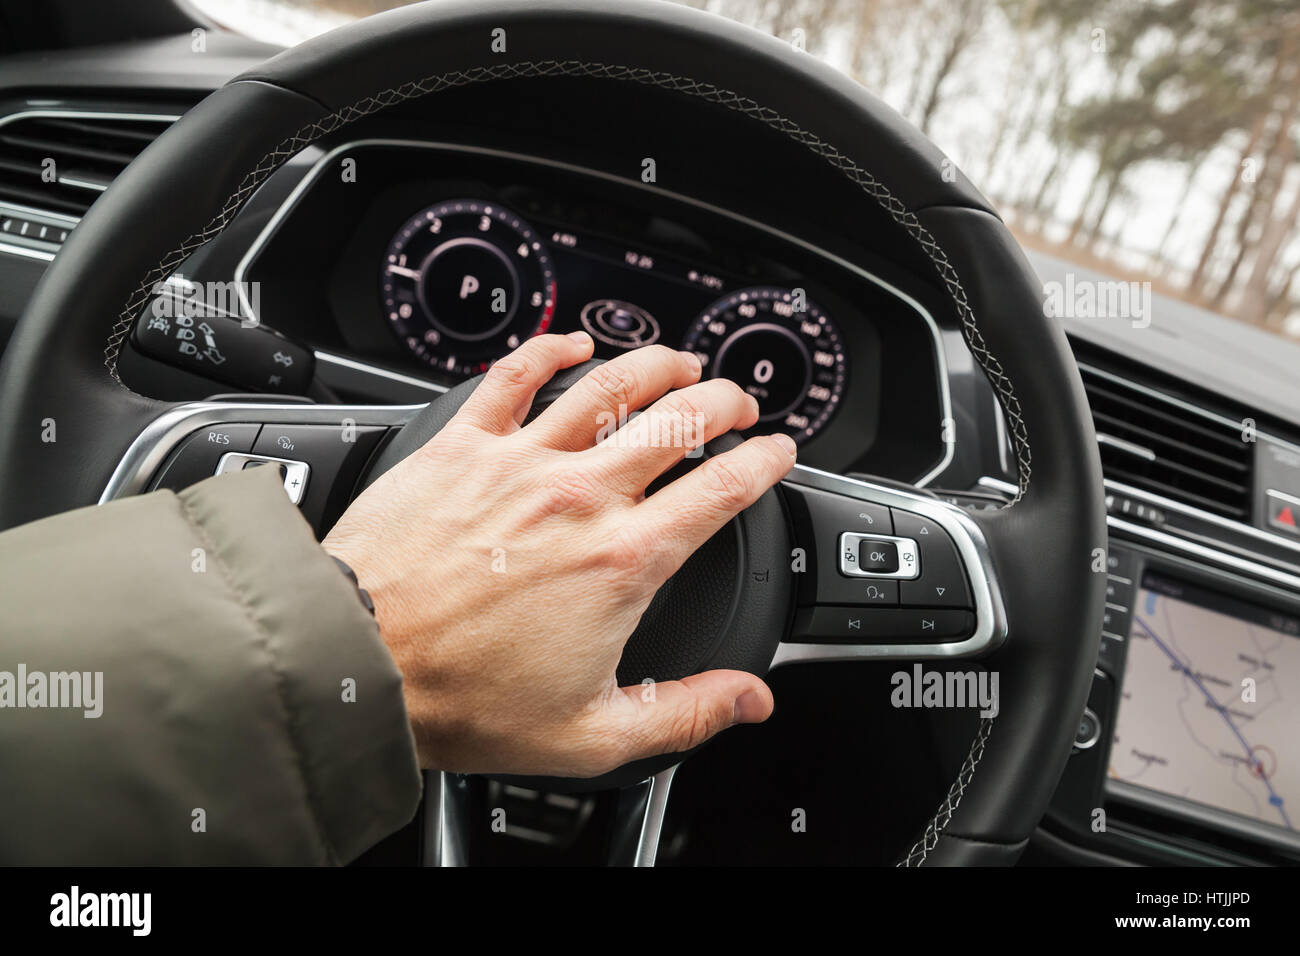 Driver hand pushes a steering wheel klaxon of luxury car. Closeup photo with selective focus - Stock Image